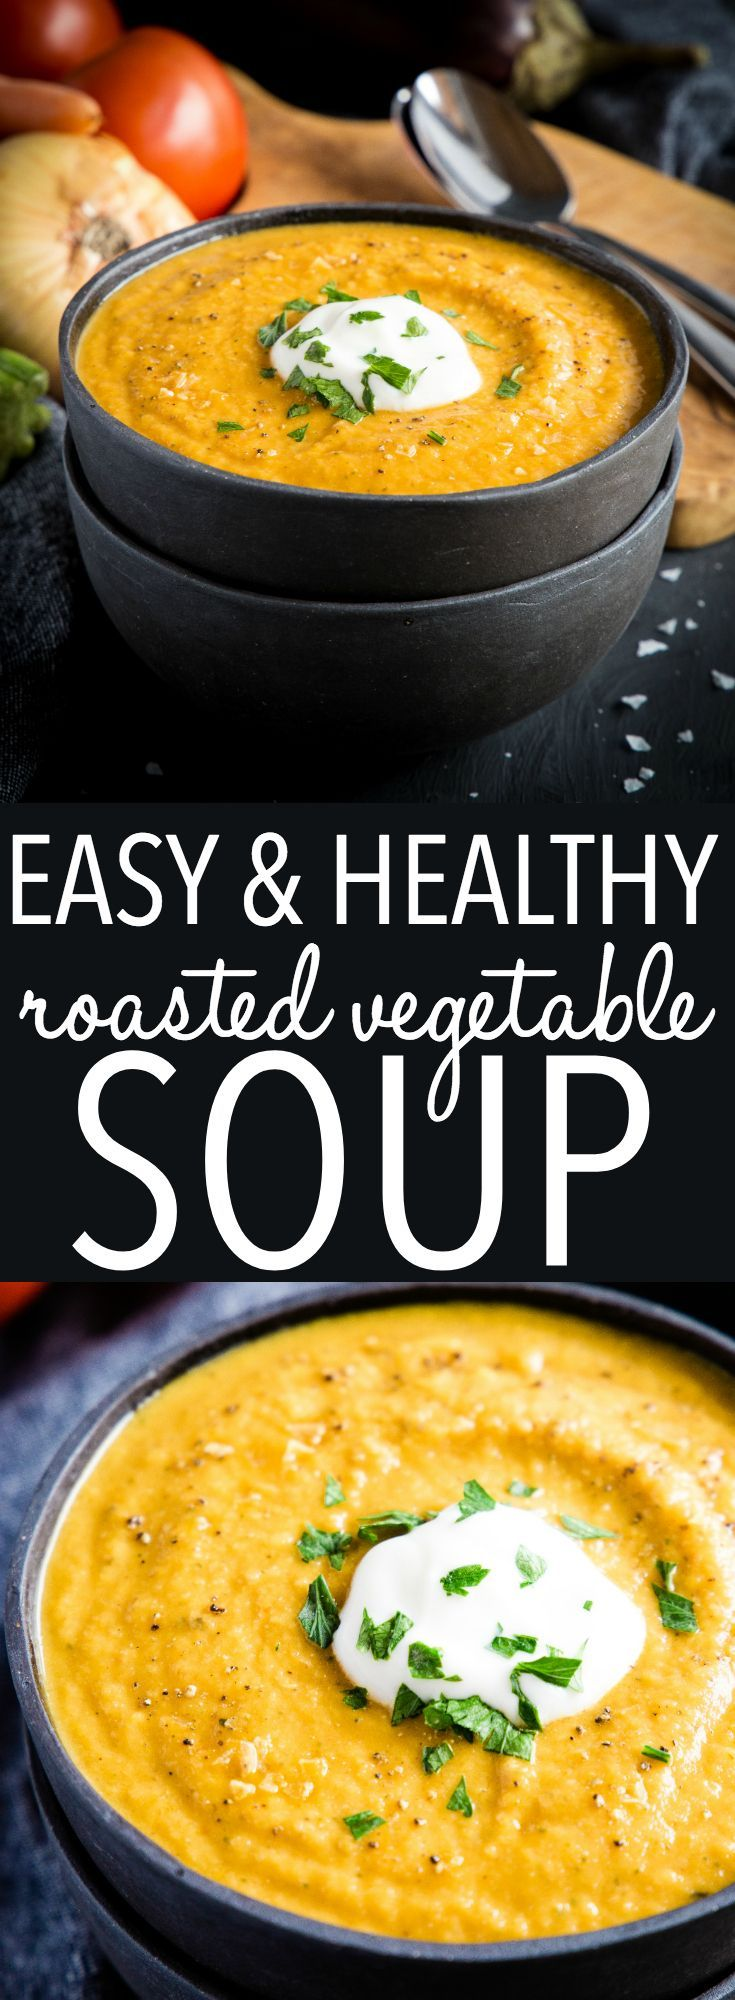 faada8191c401fbb241a6f8e55c4368c This Easy Healthy Roasted Vegetable Soup is a simple healthy soup recipe thats ...